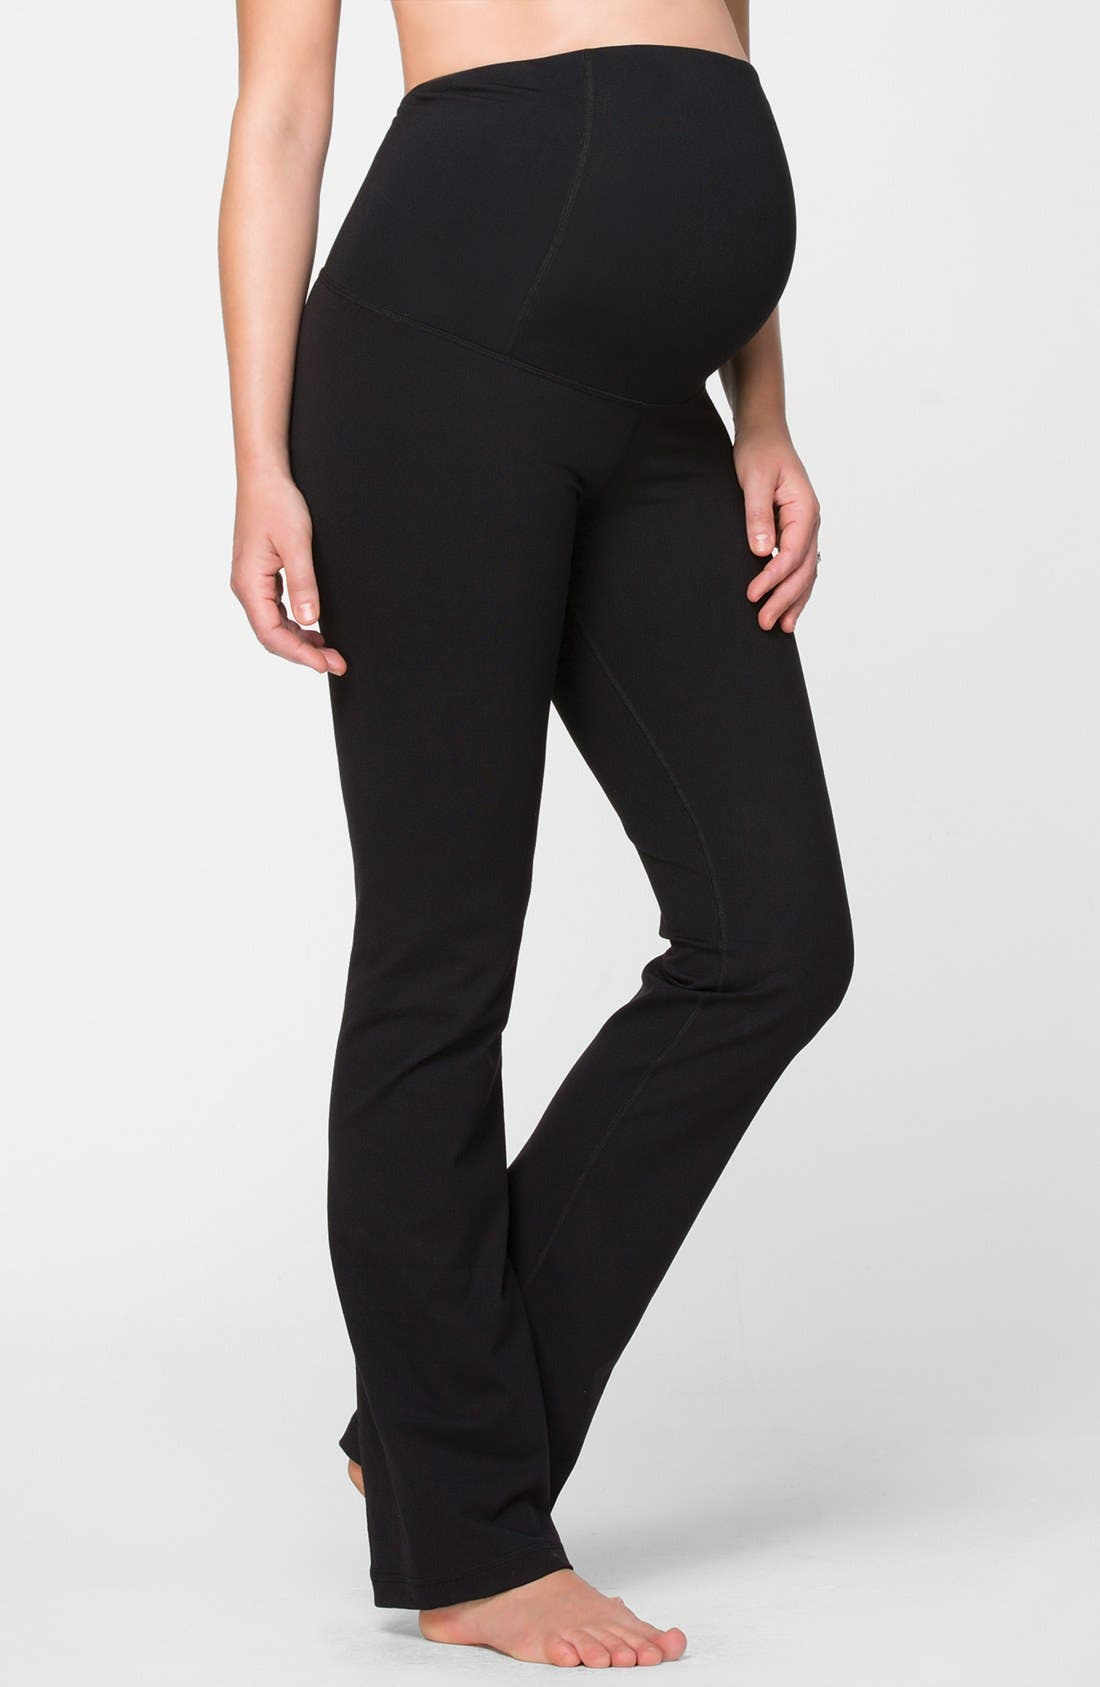 Active Maternity Pants with Crossover Panel,                             Main thumbnail 1, color,                             Jet Black